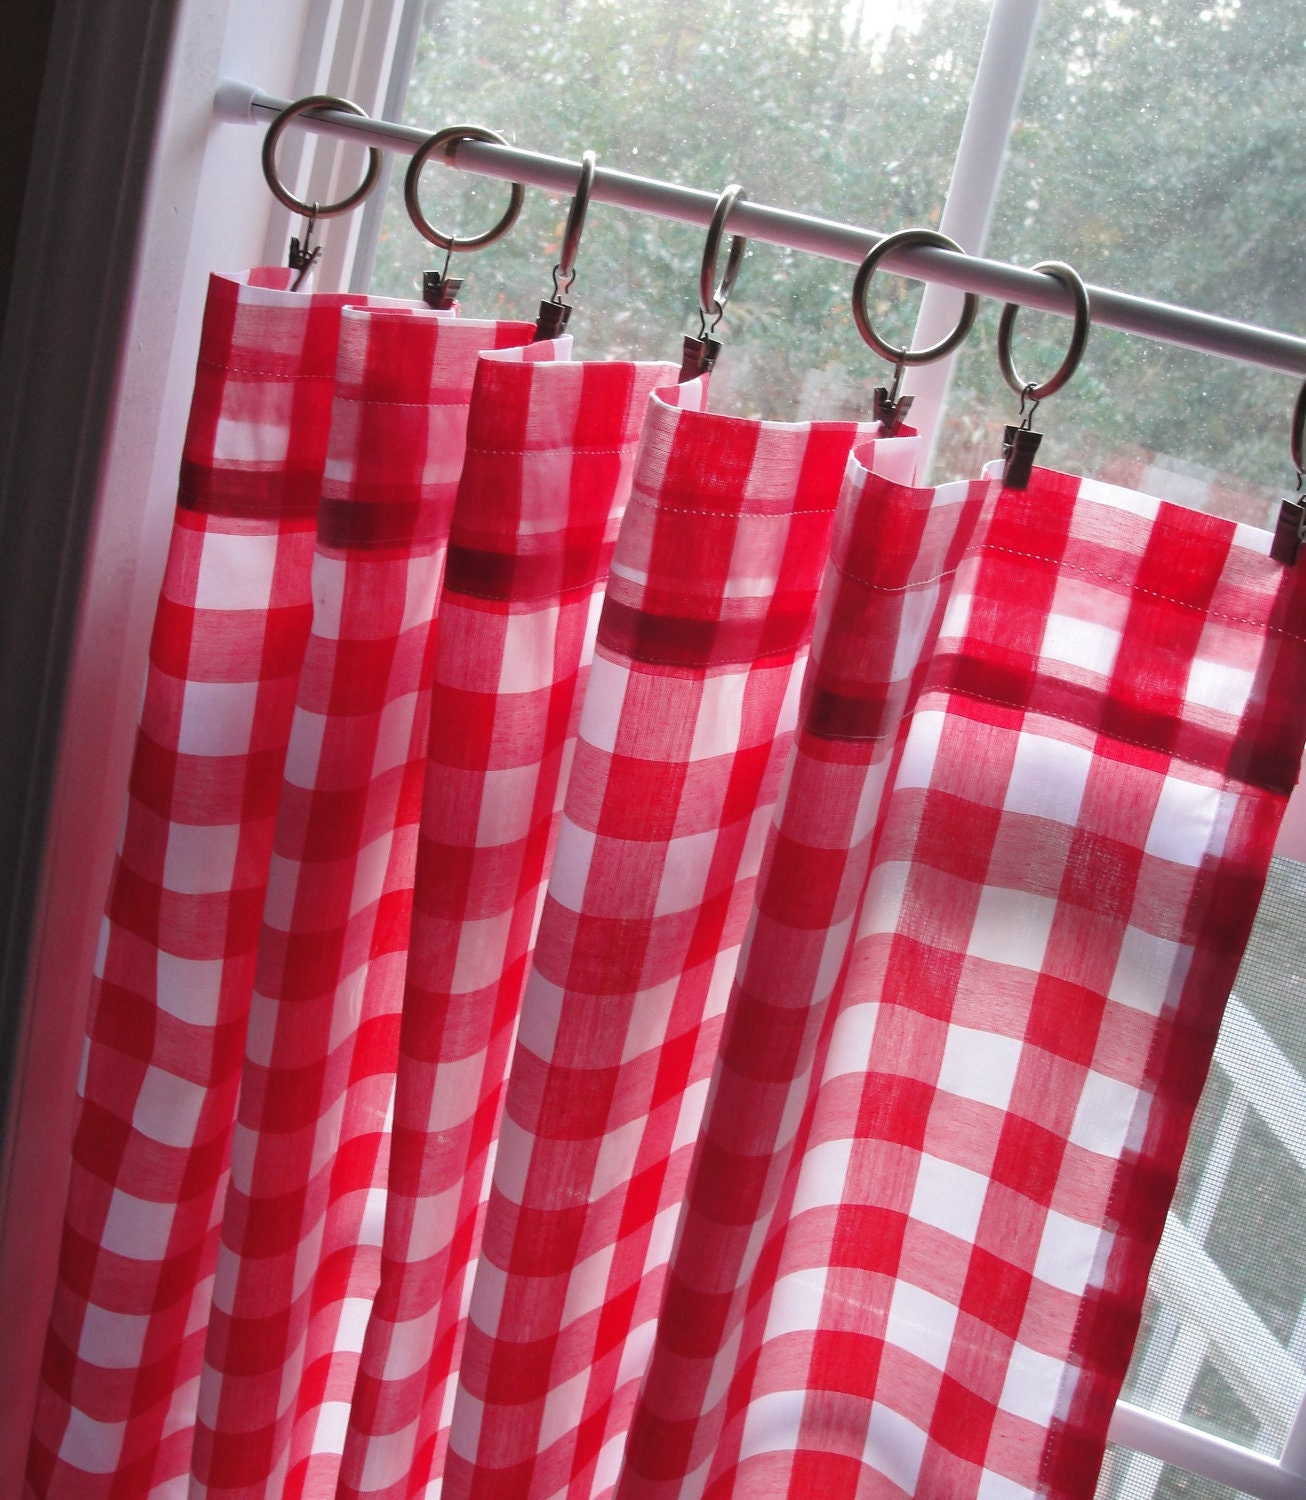 Gingham Curtains Red And White Gingham Curtains Kitchen: Cafe Curtain Set 80 Wide Large Red And White Gingham